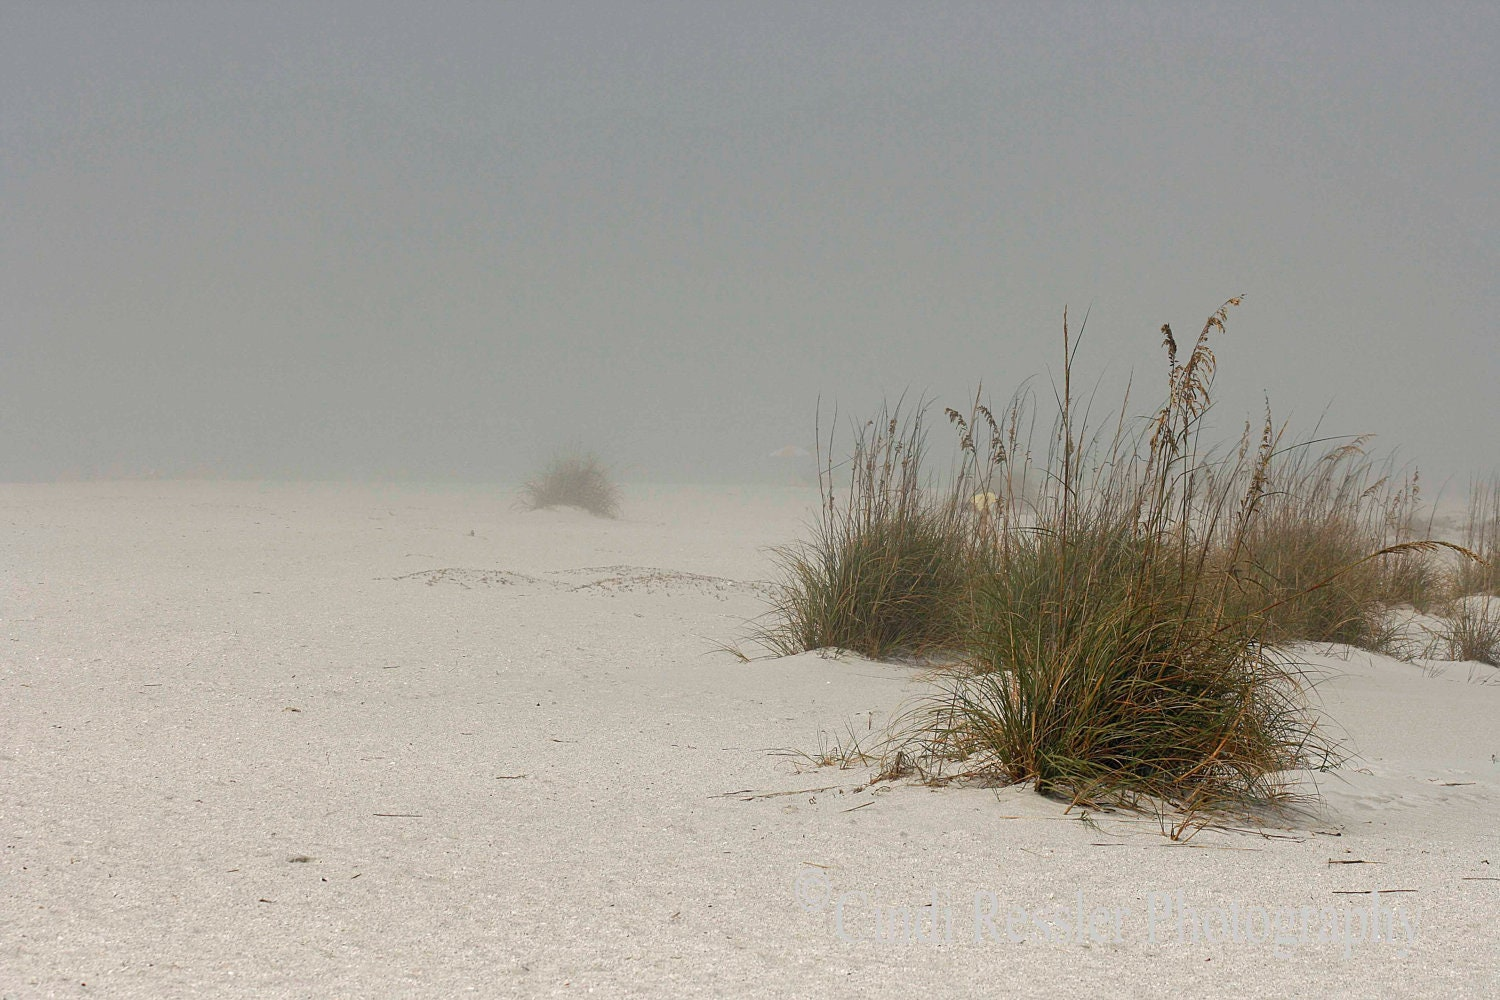 Fog Covered Beach, 5x7 Fine Art Photography, Beach Photography - CindiRessler